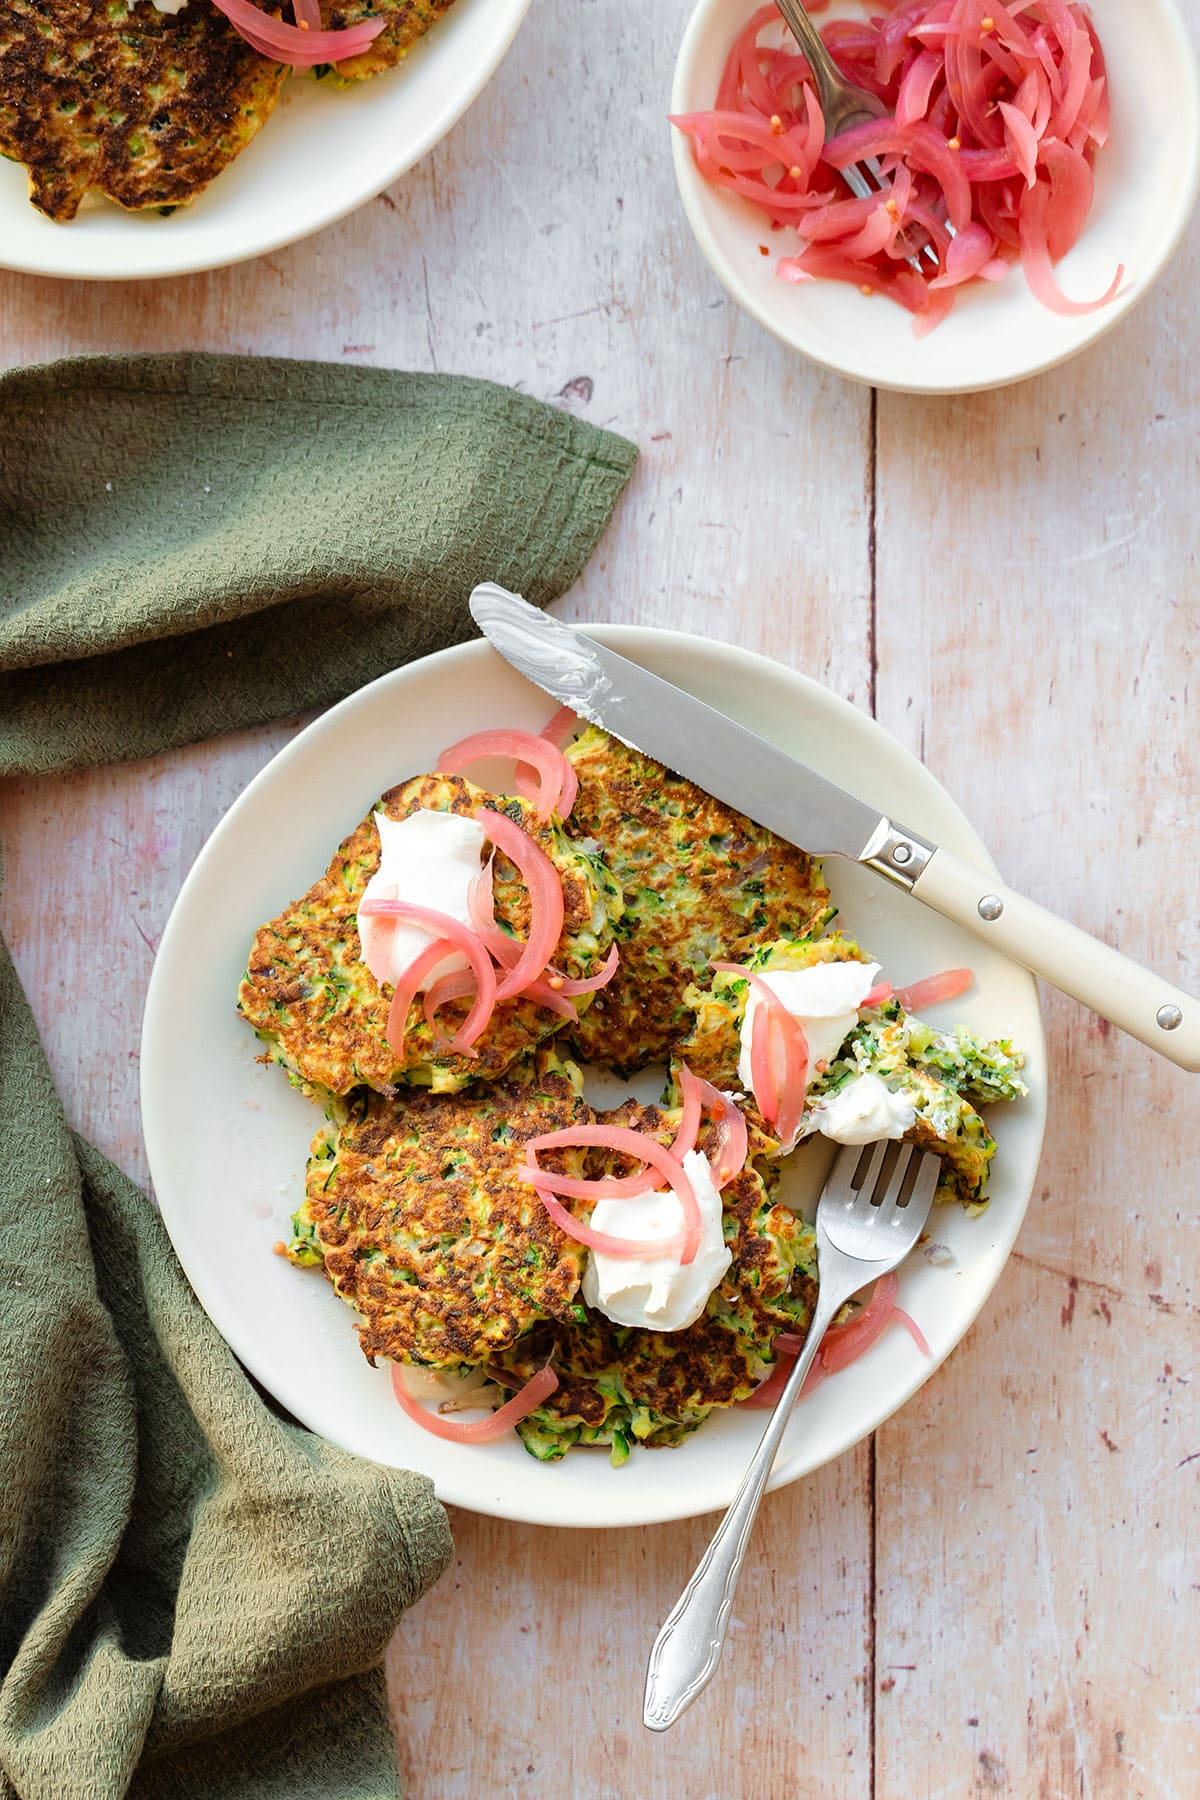 Zucchini fritters topped with pickled red onion and labneh on a white plate on a light wooden background with a green kitchen towel lying on the left. There is a fork and a knife on the plate with a cut up fritter.